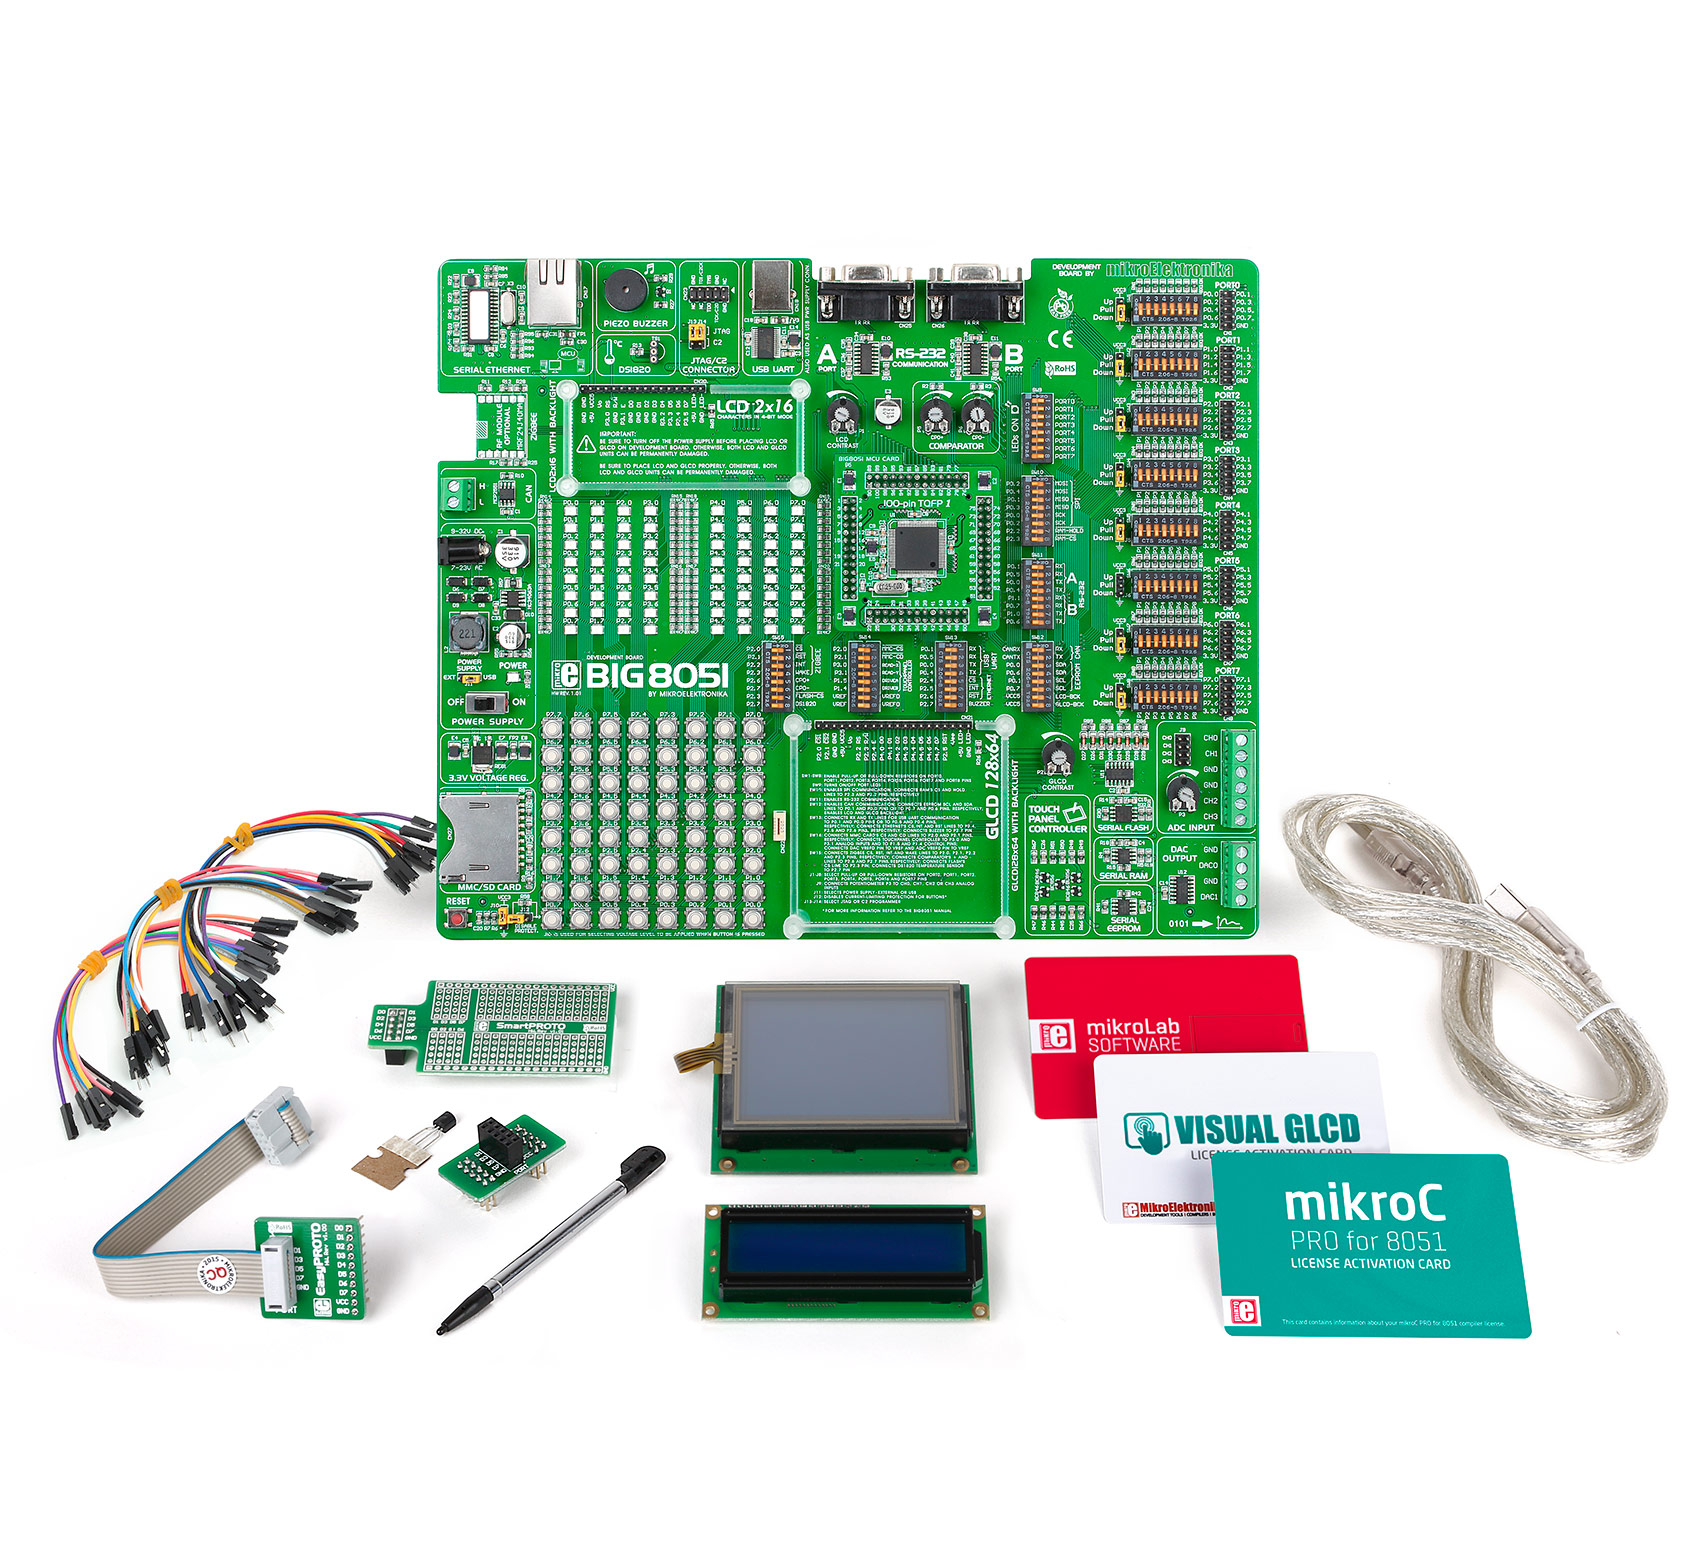 Buy Mikrolab For 8051 L At The Right Price Electrokit Programmer Circuit Home Development Tools